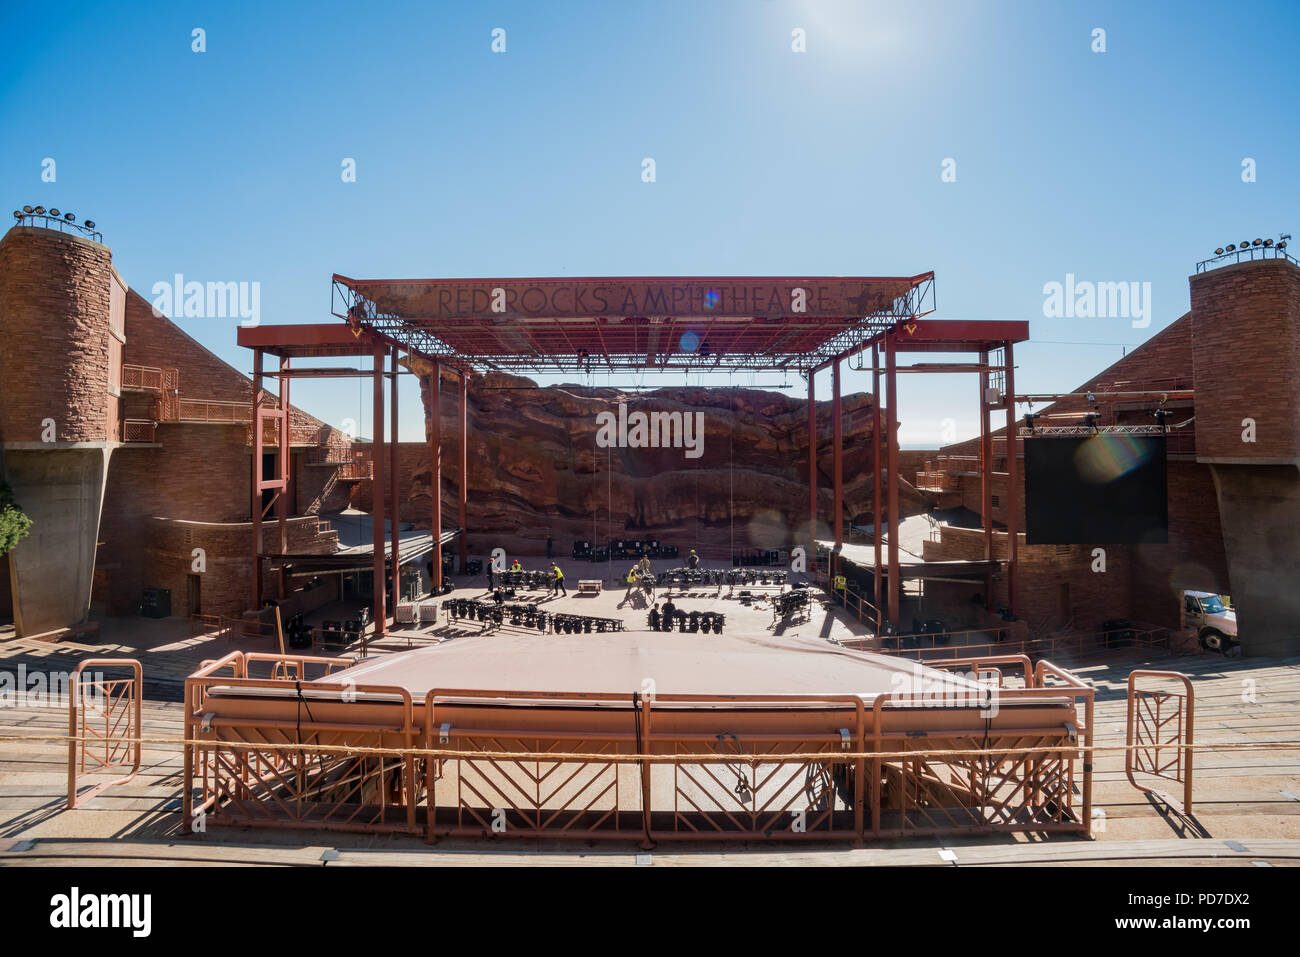 Red Rocks Amphitheatre Colorado High Resolution Stock Photography And Images Alamy